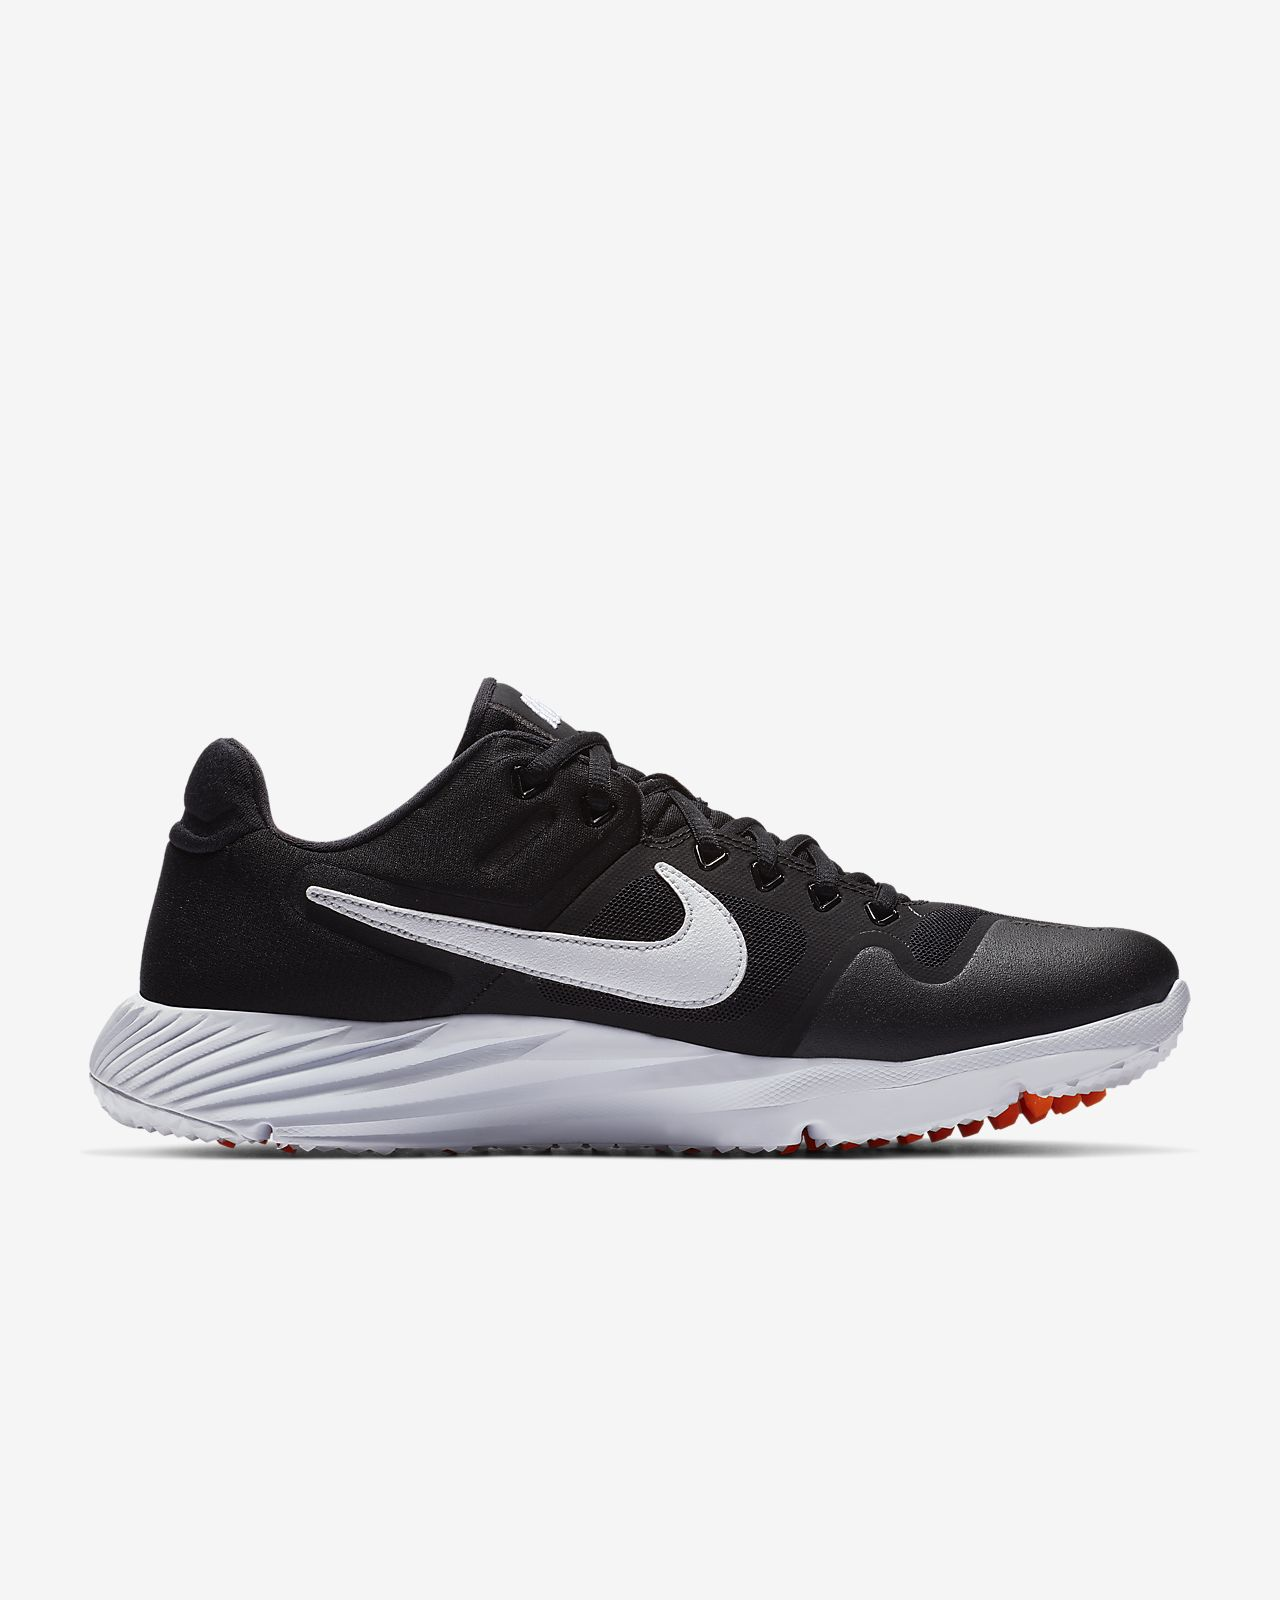 Baseball Alpha Elite 2 Huarache Cleat Nike Turf tQCrdhs